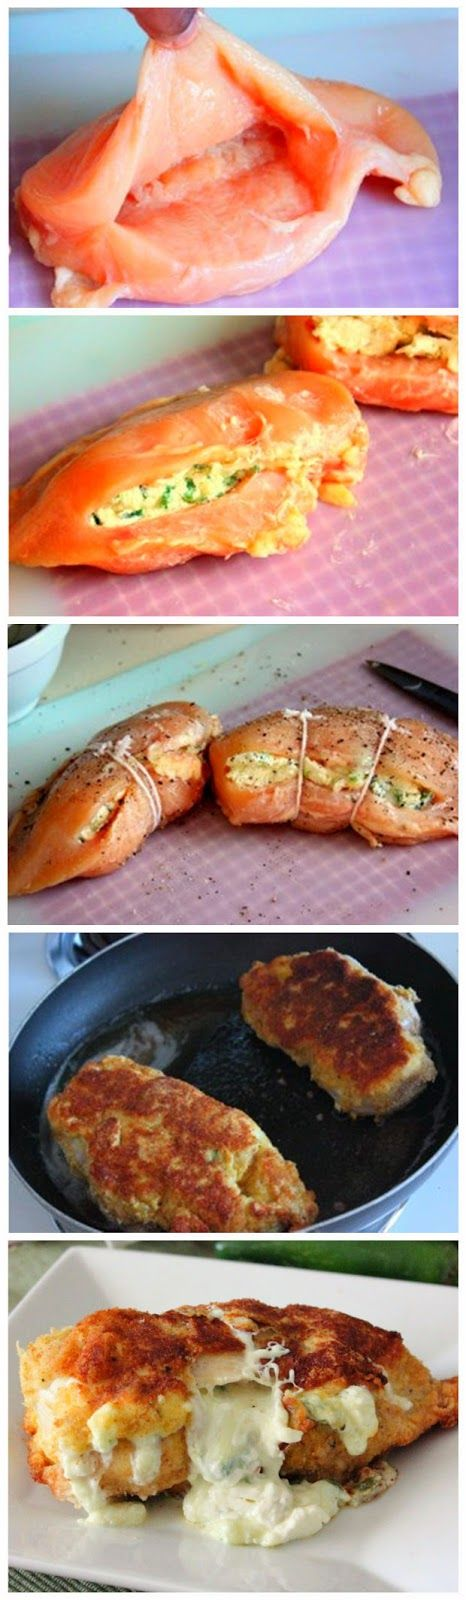 Jalapeno Popper Stuffed Chicken Breasts -  Use baking blend for breadcrumbs